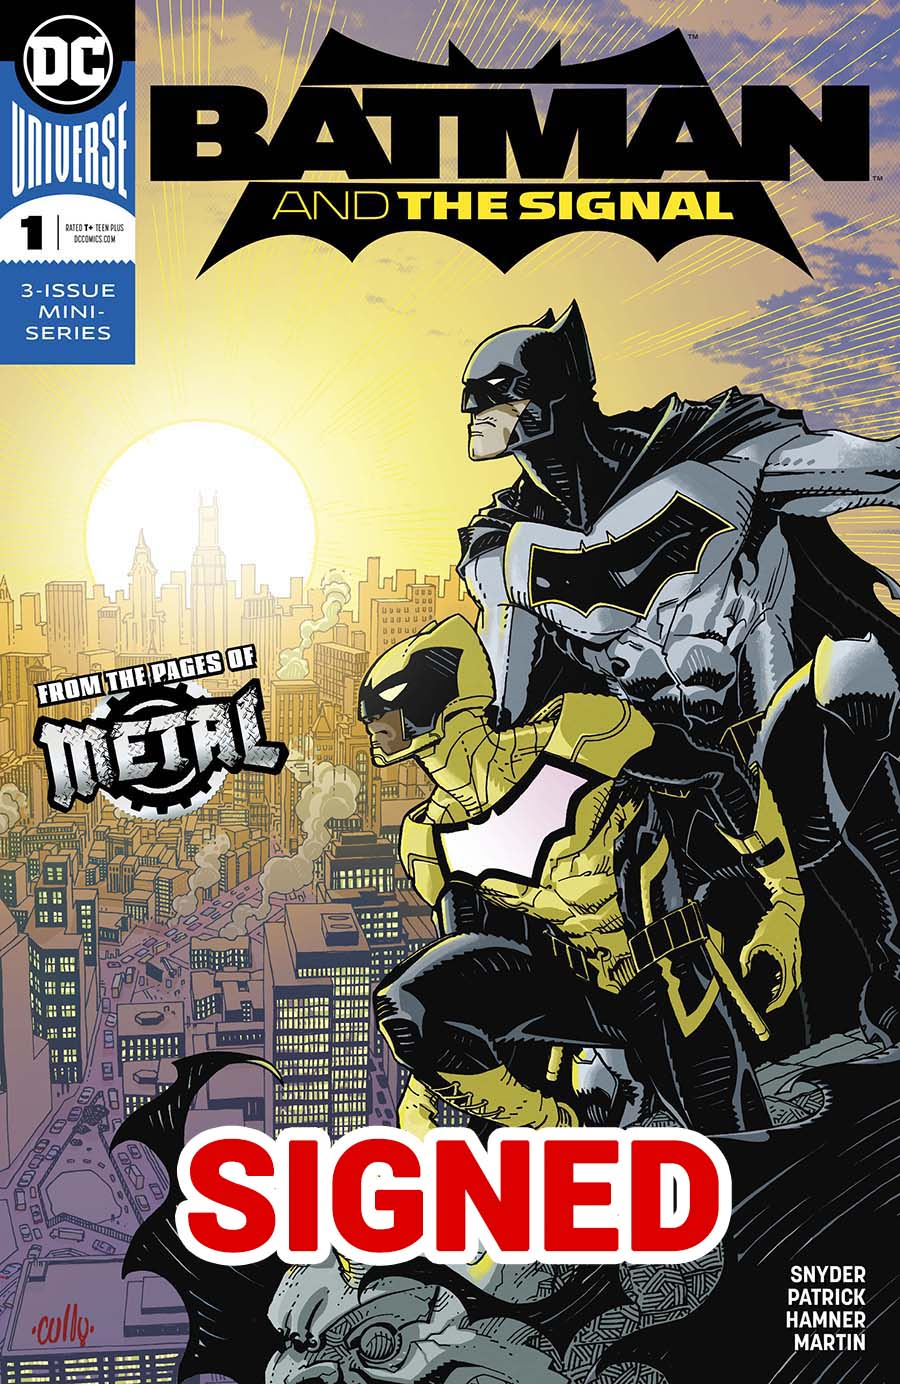 Batman And The Signal #1 Cover D Regular Cully Hamner Cover Signed By Scott Snyder & Tony Patrick (Dark Nights Metal Tie-In)